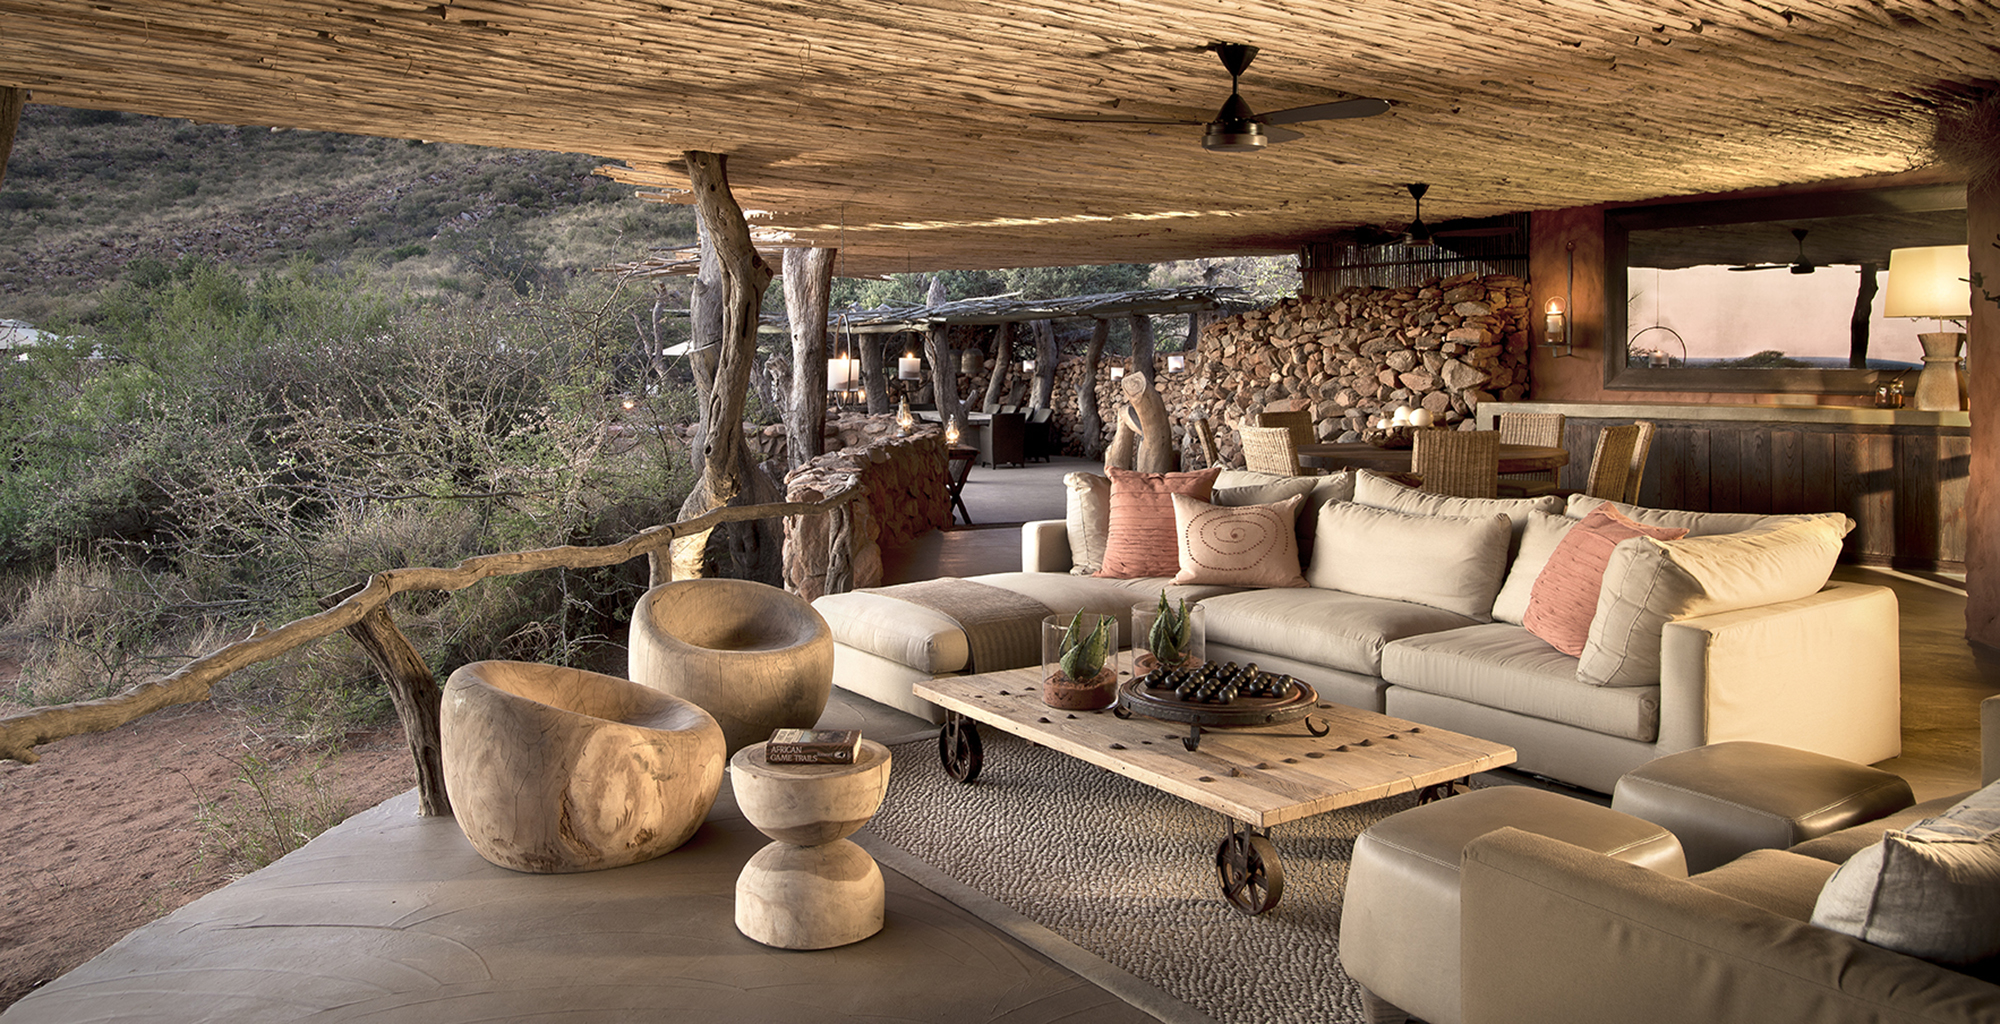 South-Africa-Tarkuni-Terrace